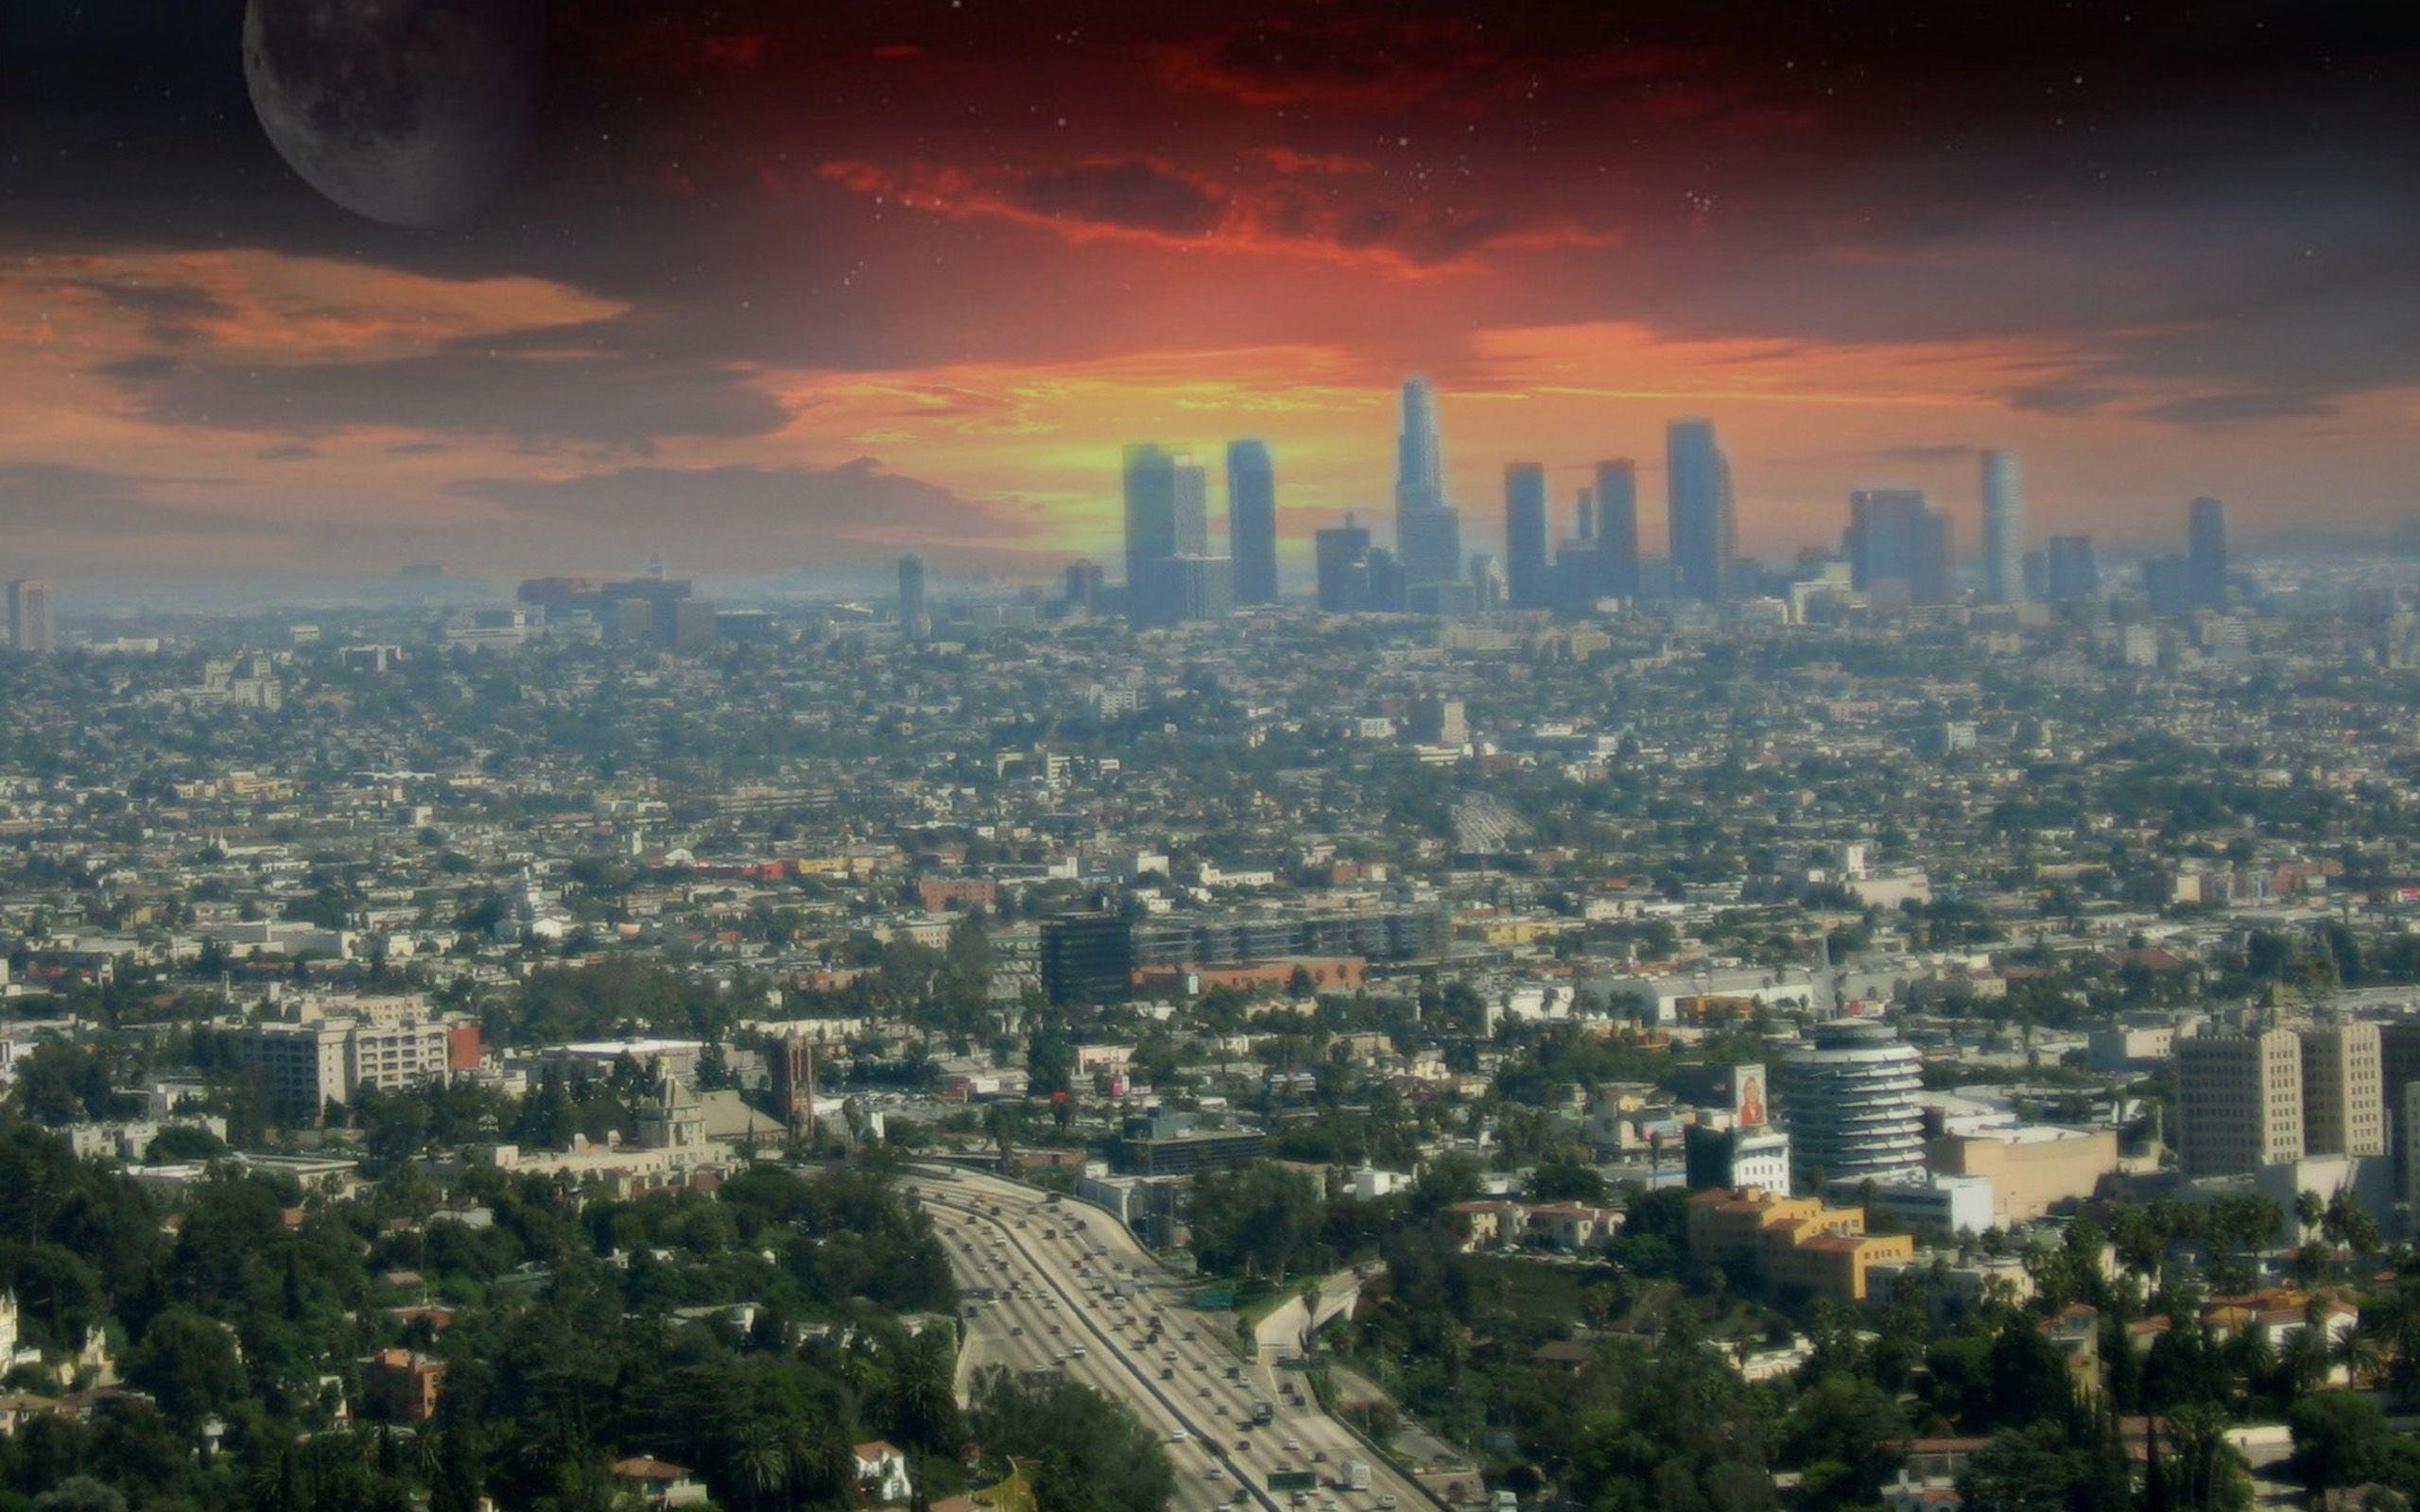 Los Angeles City Wallpaper - WallpaperSafari